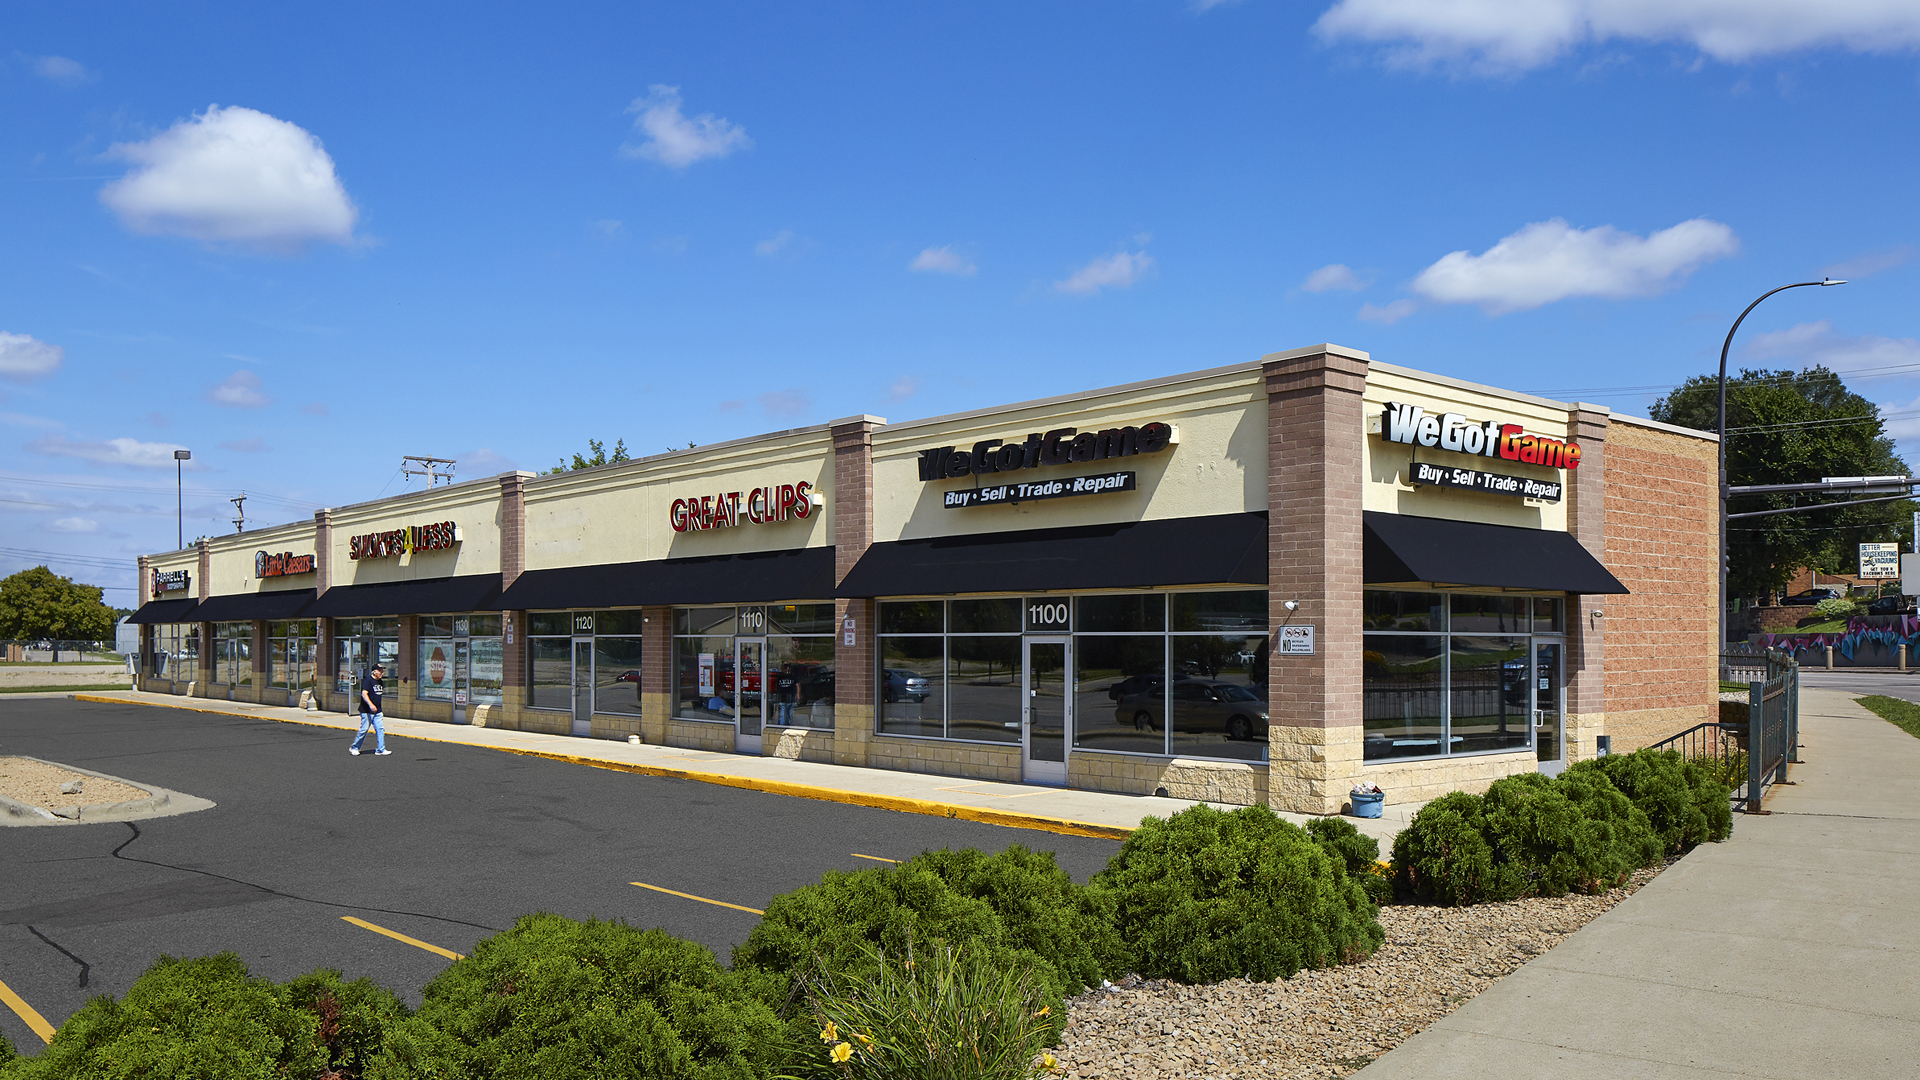 Riverfront Retail Shopping Center Mankato MN Strip featuring We Got Game